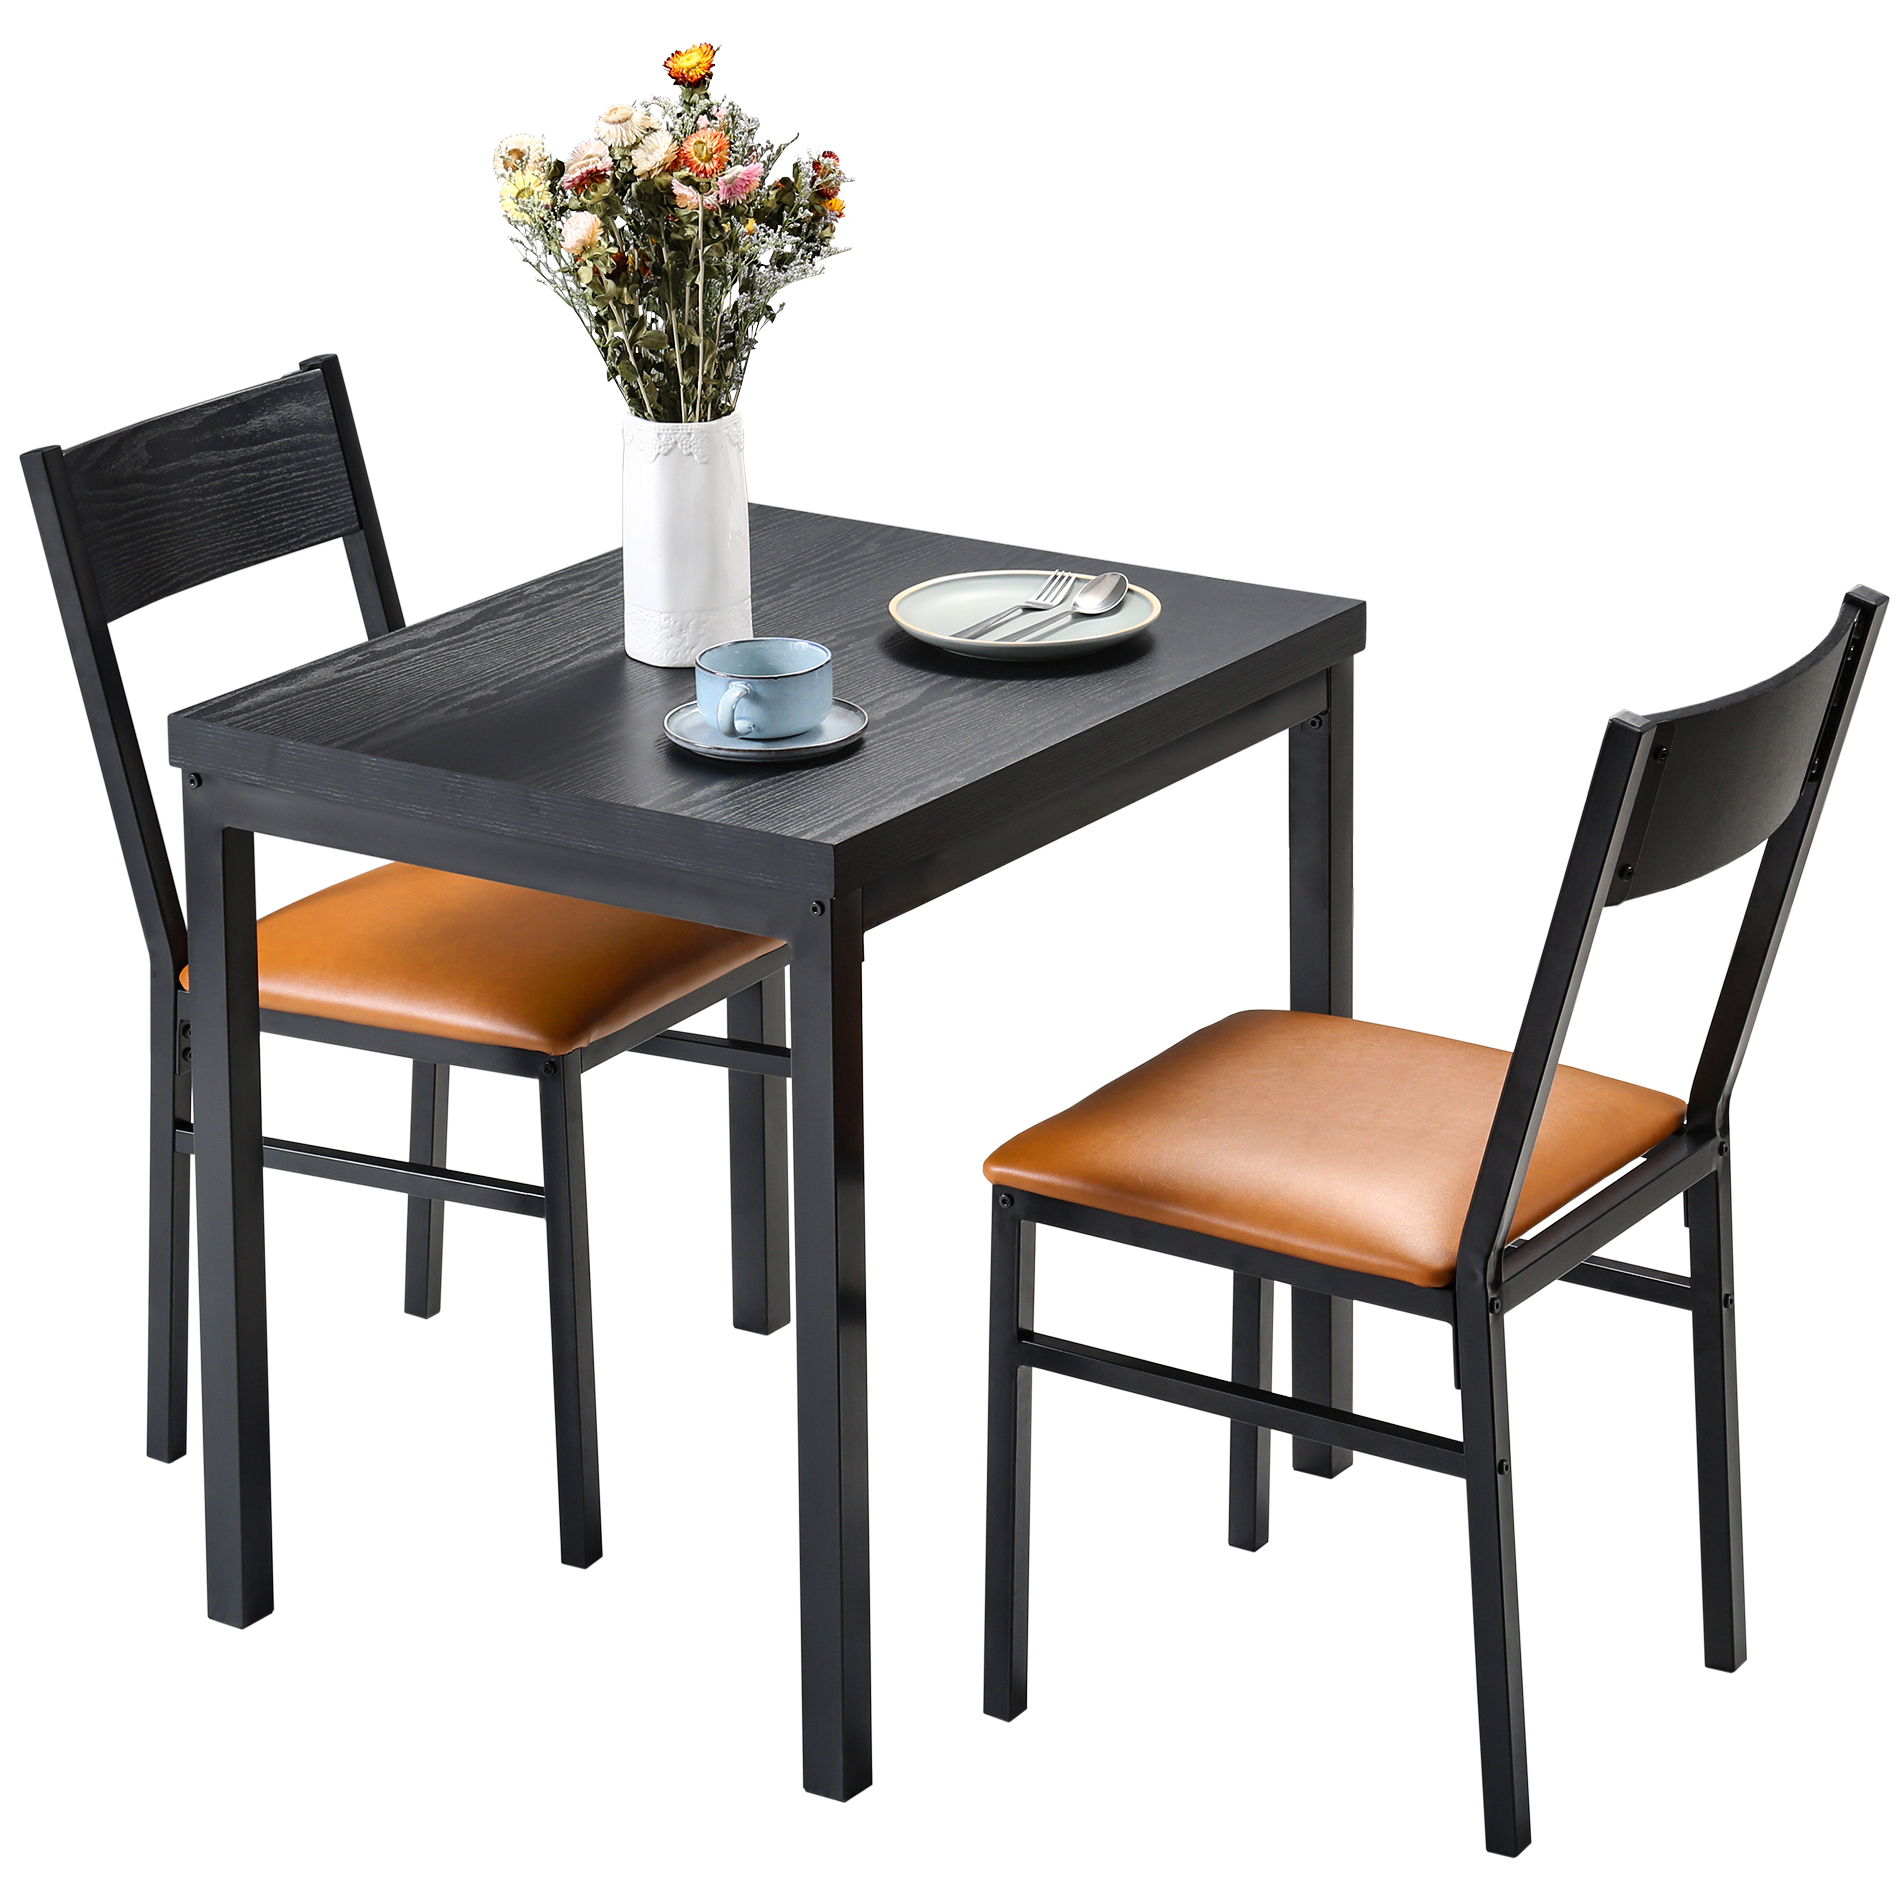 3 Piece Dining Table Set With Cushioned Chairs For Dining In 2019 Tudor City 28'' Dining Tables (View 11 of 20)